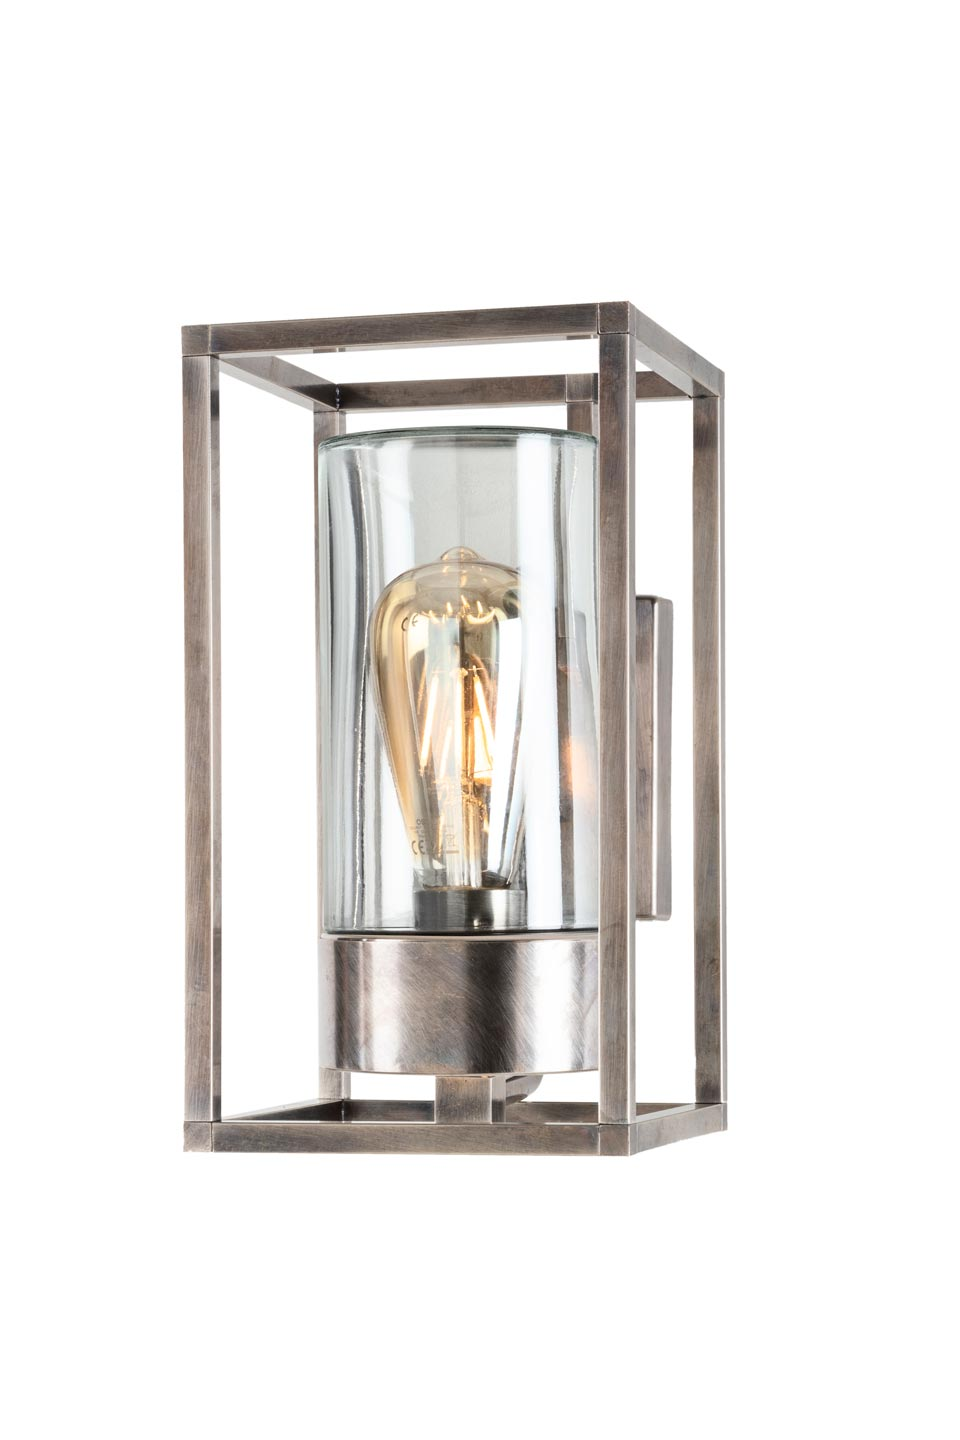 Cubic Wall Mounted Outdoor Lantern In Aged Nickel Ref 20040011